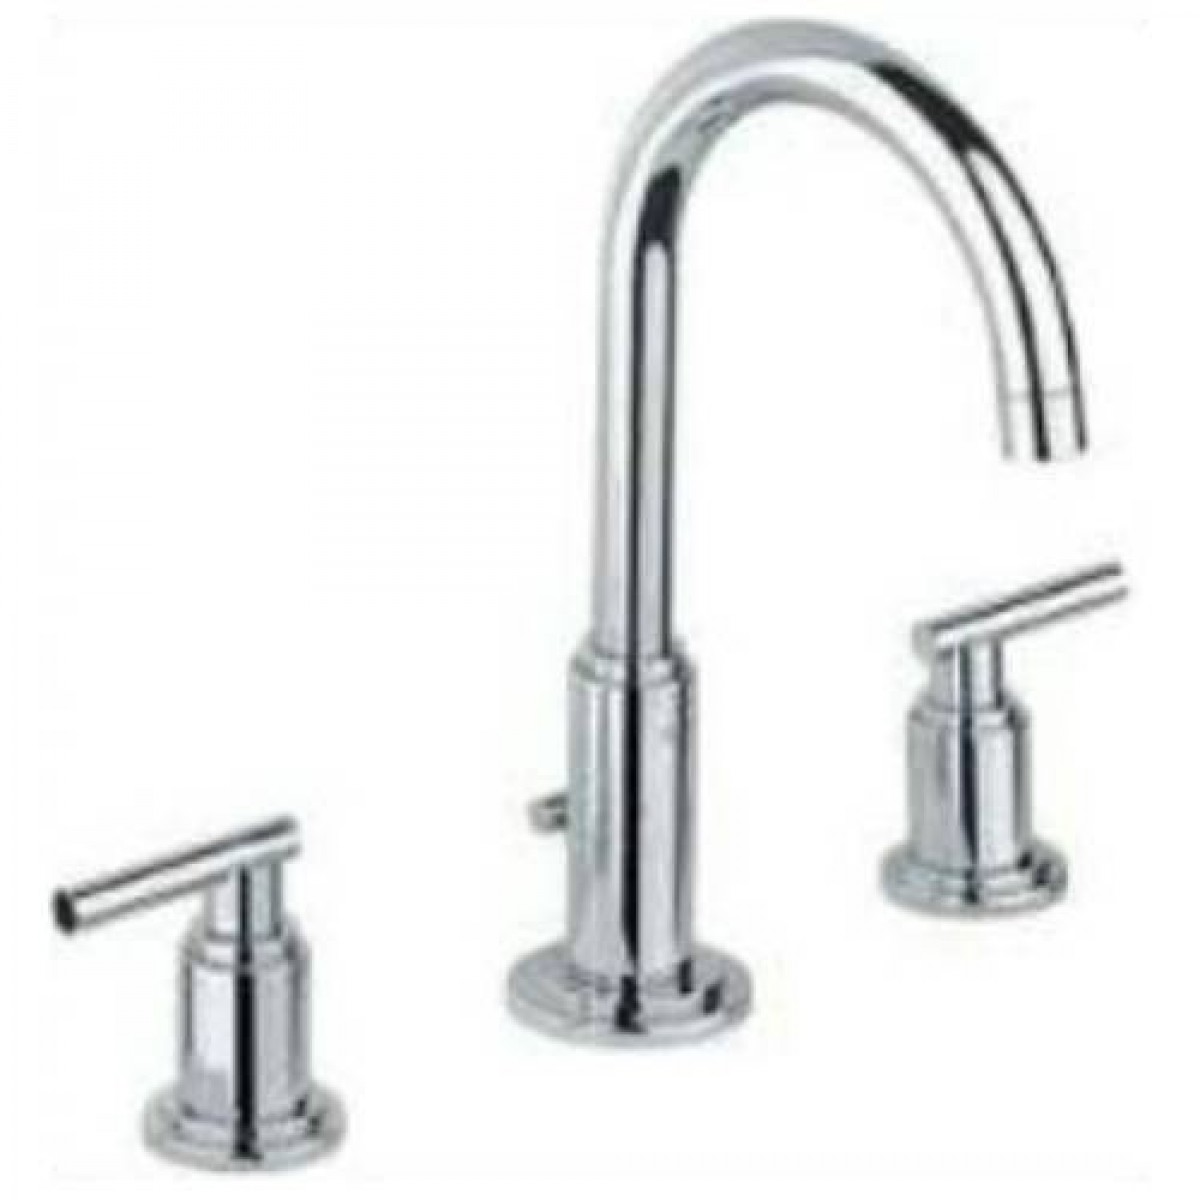 Grohe faucet bathroom -  Grohe 20069 18027 Atrio High Spout Widespread Bathroom Faucet With Lever Handles 49578